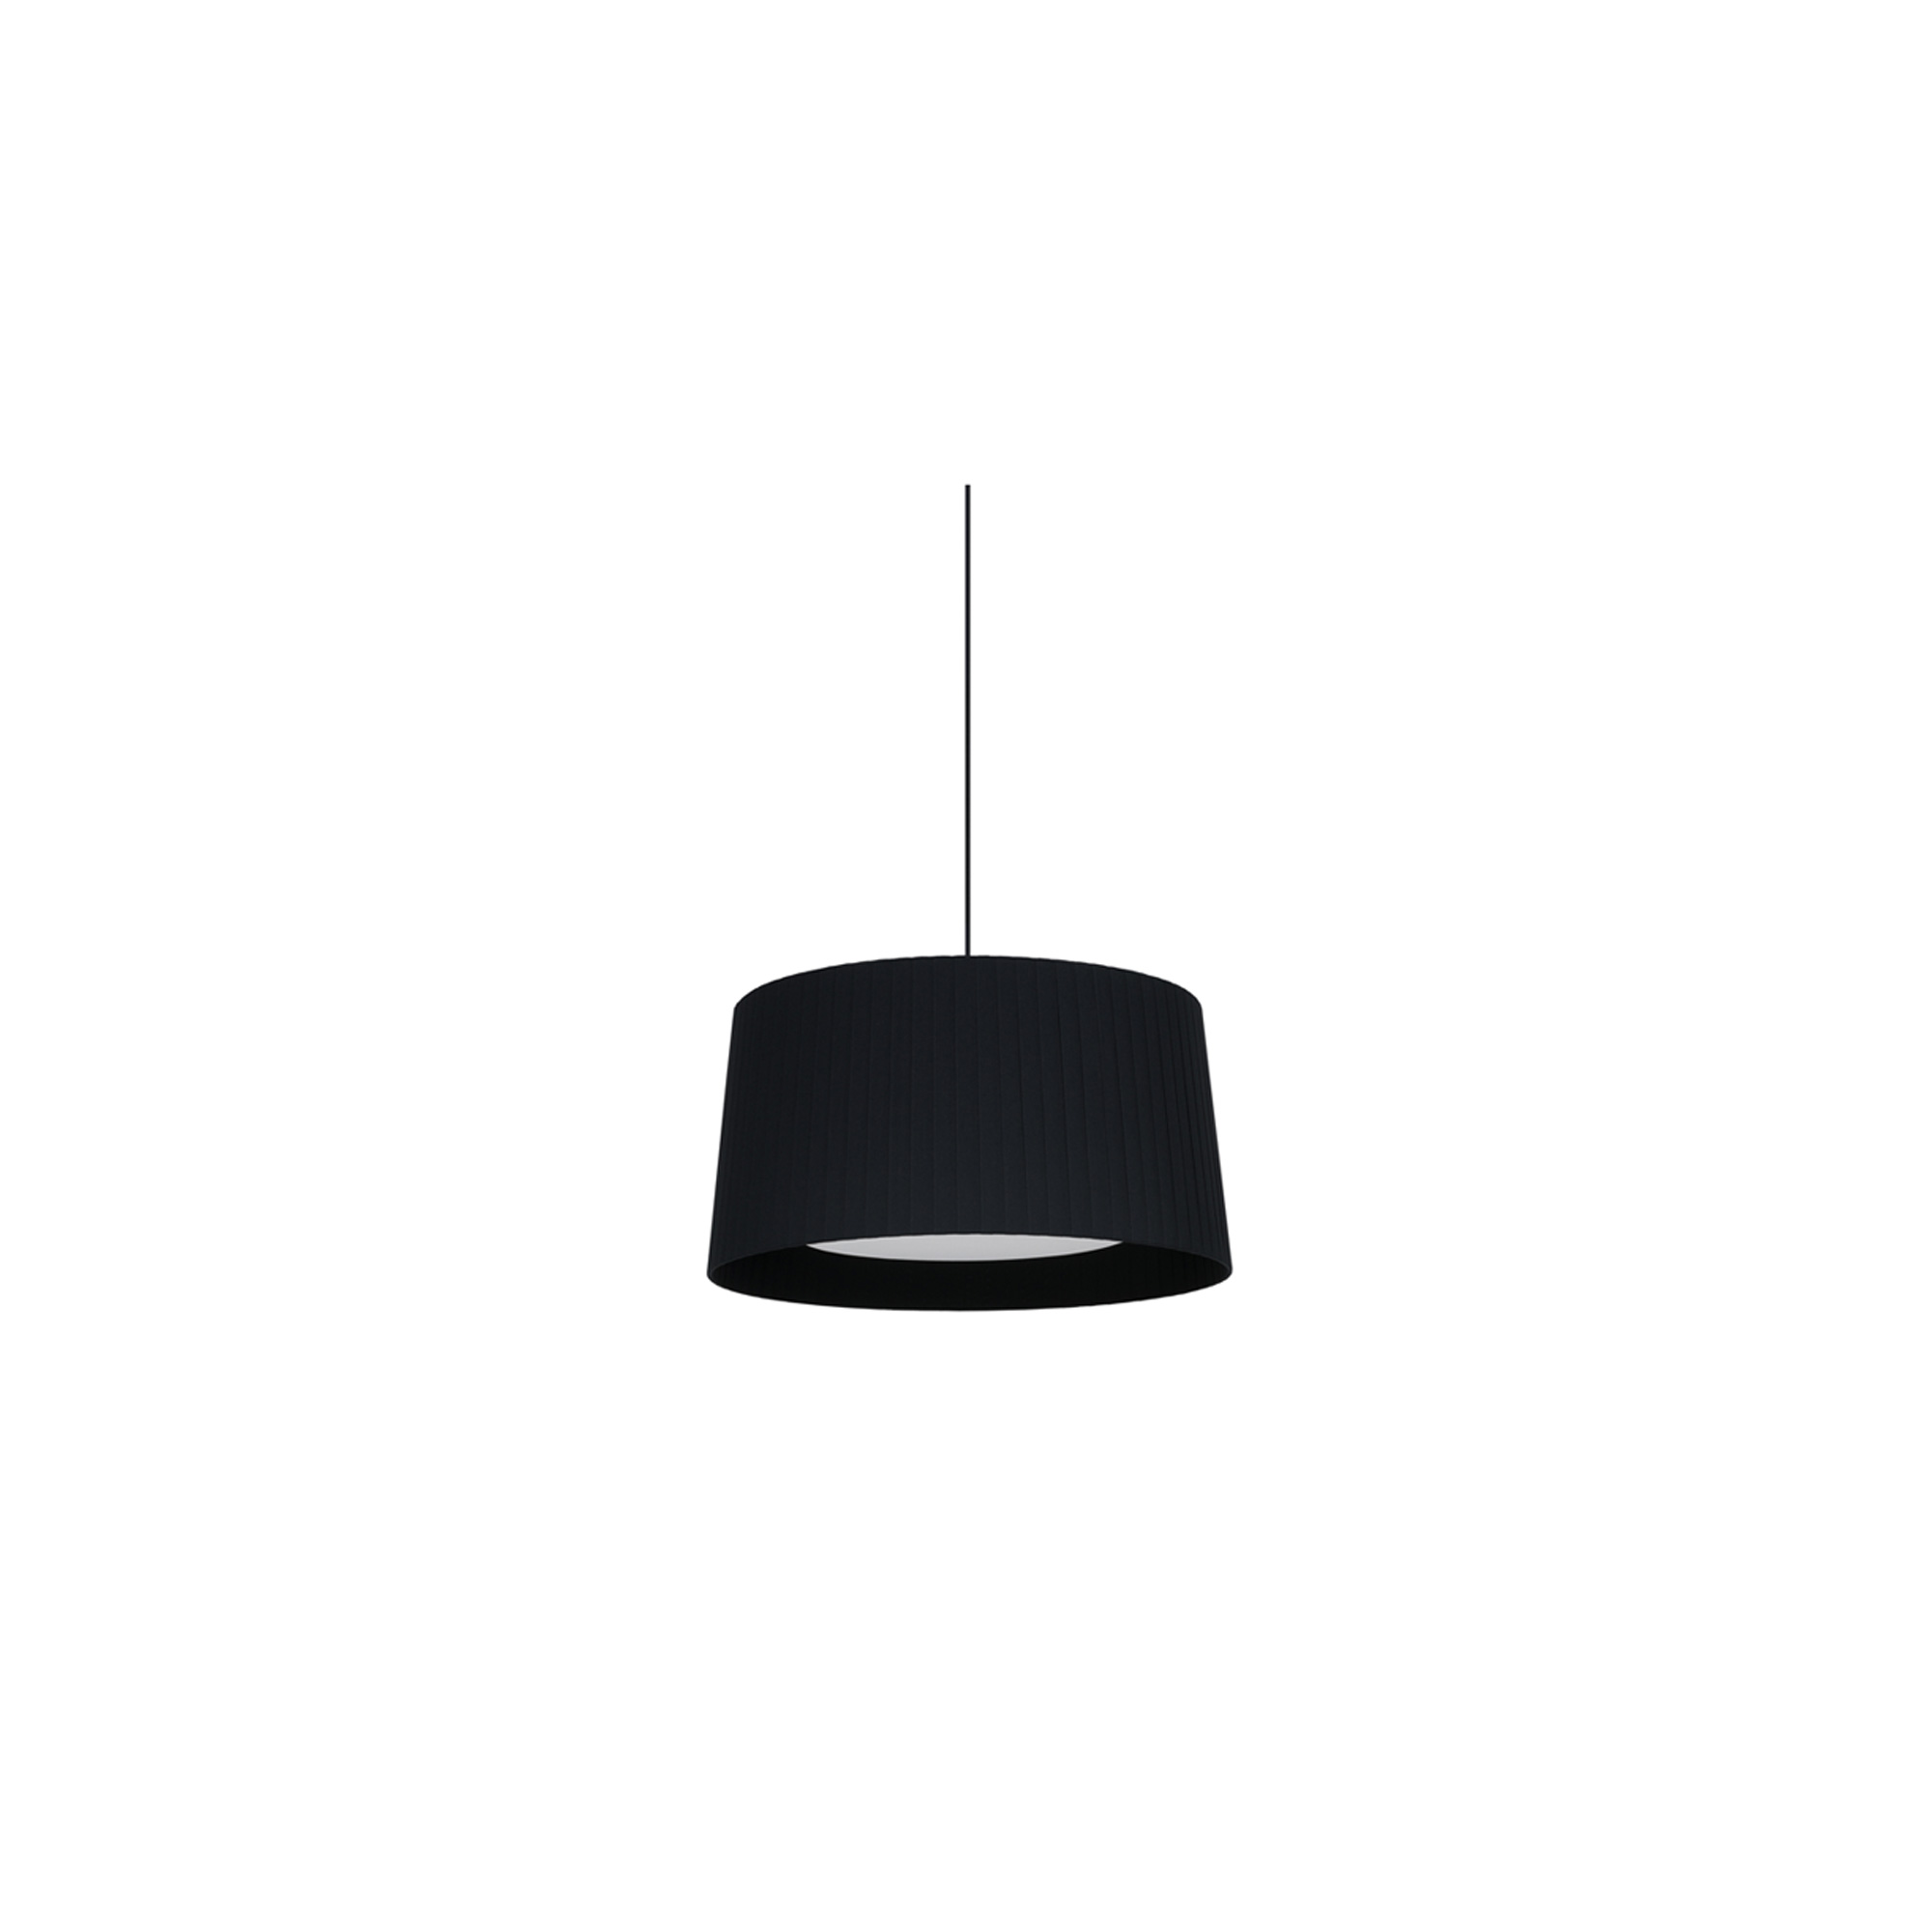 GT6 Pendant Lamp - The GT5 and GT6 are ideal for average-size spaces or domestic use. The pendant lamps feature beautiful ribbon shades that add elegance and a touch of colour to a neutral room. This is a colourful family that varies in size without altering its essence, creating rich luminous tones. With the light on, the shade provides a warm light, rich in nuances. Light source is not included, it is available to purchase separately. Please enquire for it. Satin nickel and textured black finish are not available with white cable.  | Matter of Stuff